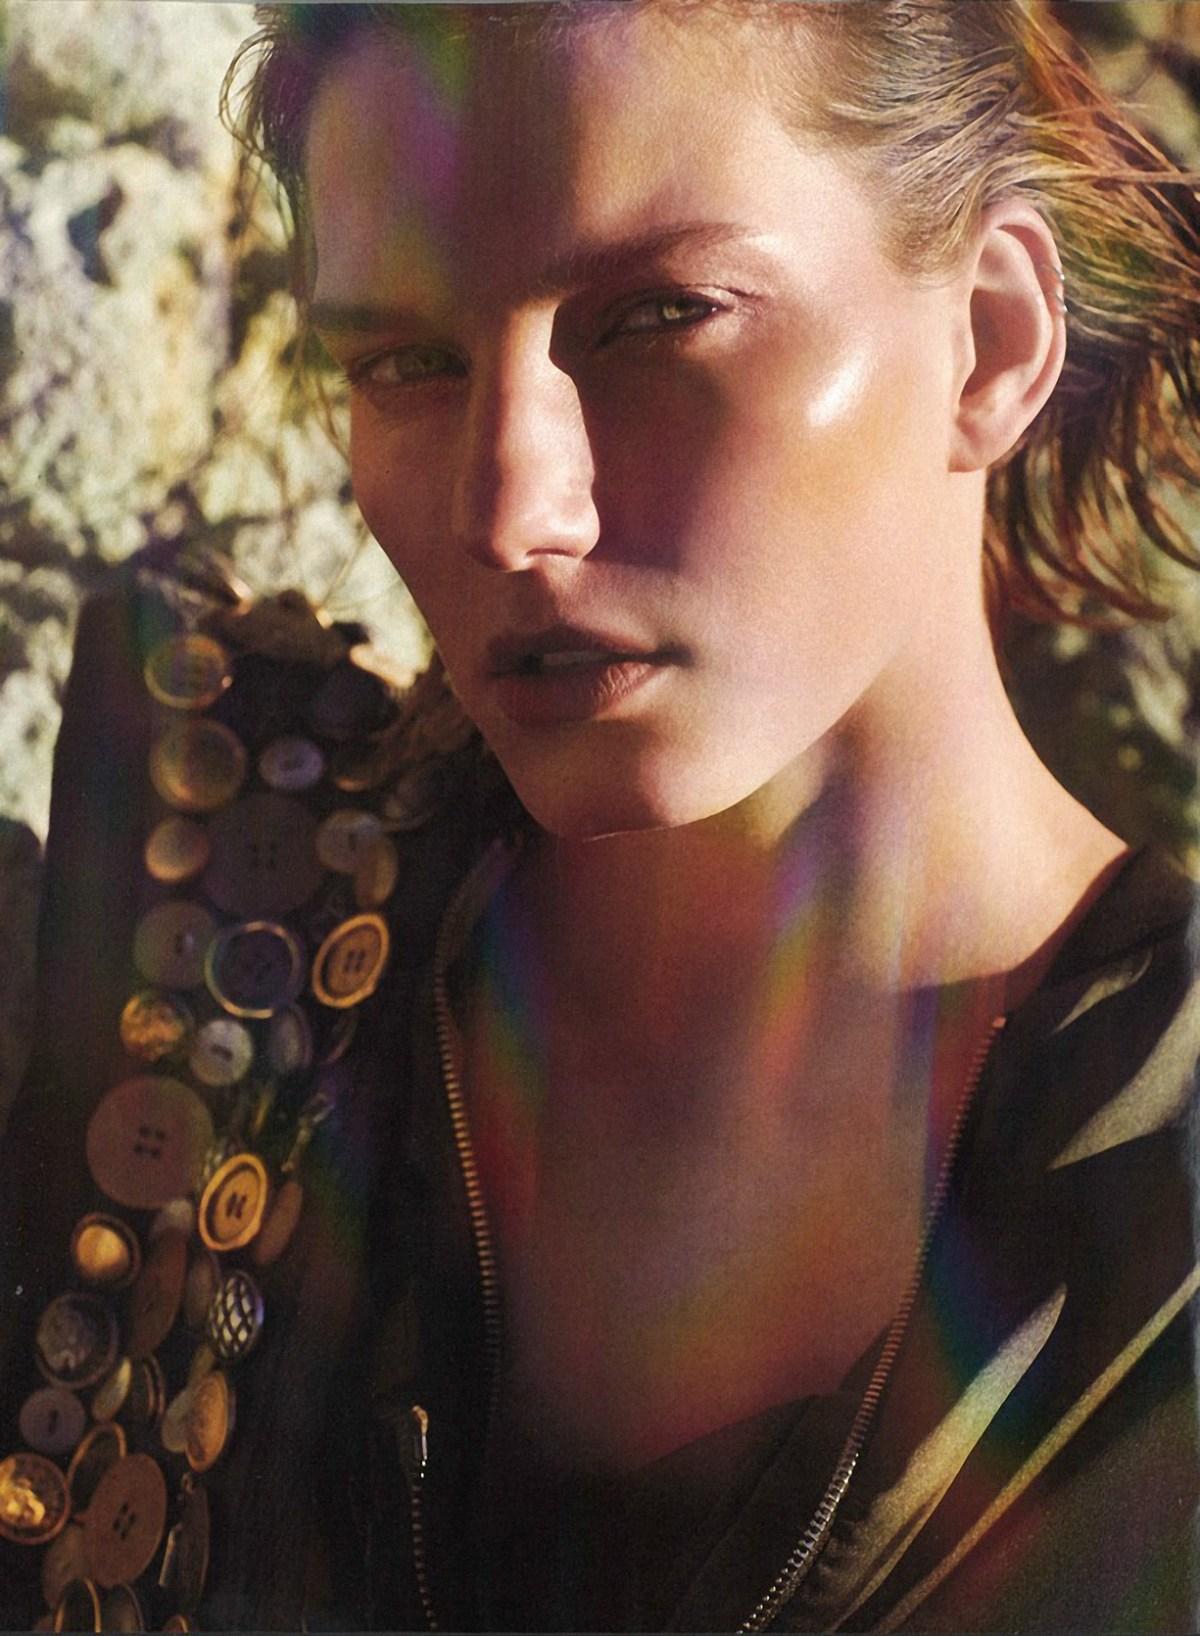 Marique Schimmel by Laura Sciacovelli for Marie Claire Italy